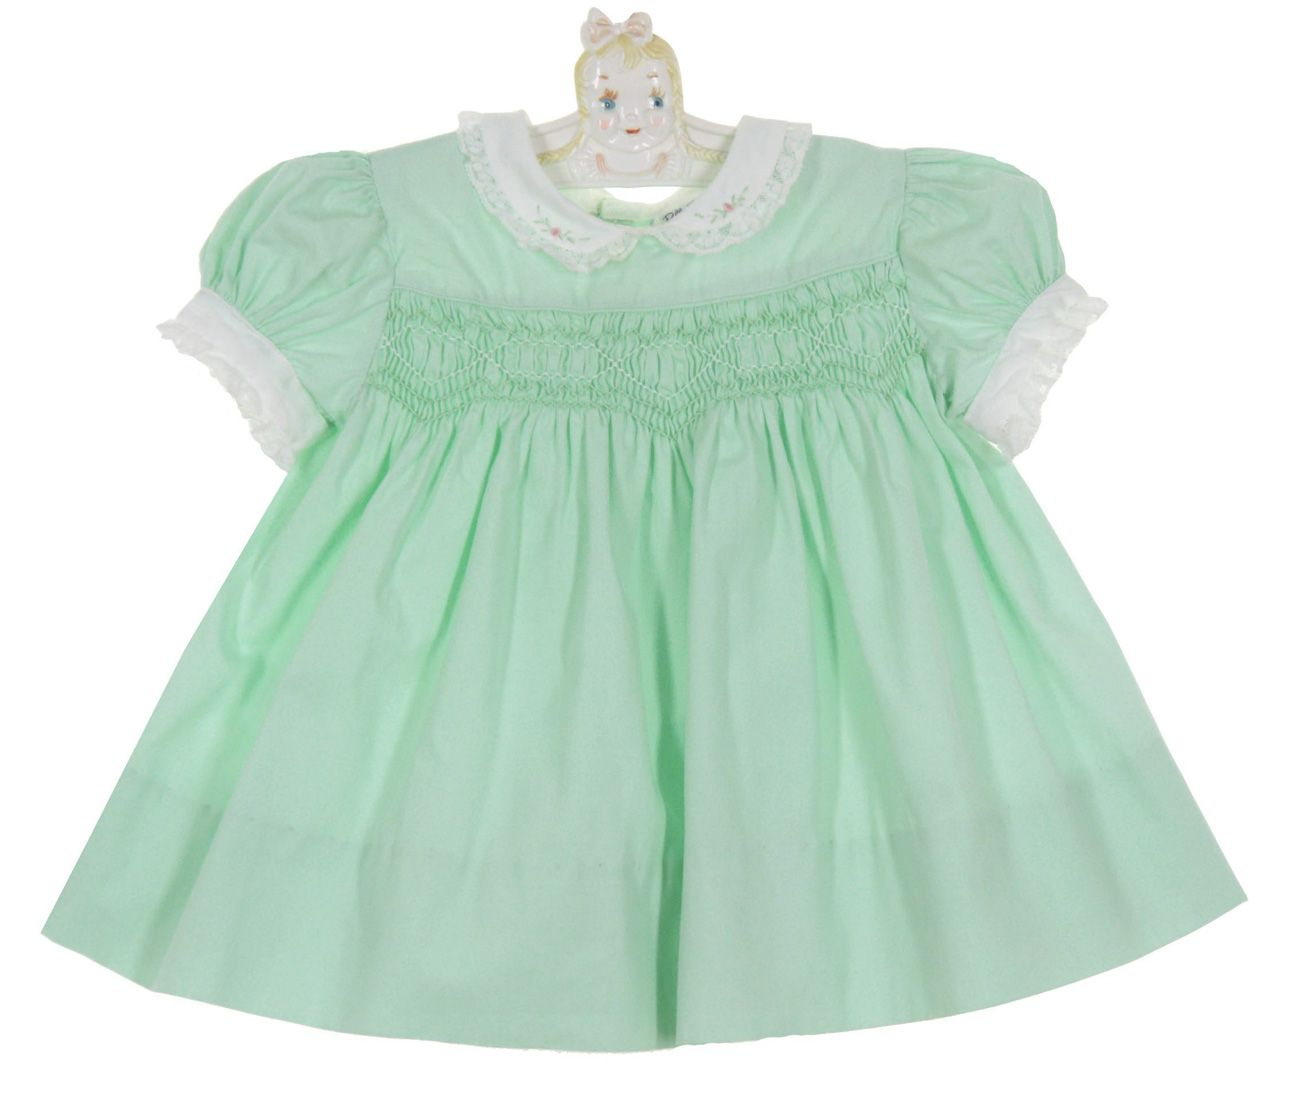 0ea264fbc697 Vintage 1950s Polly Flinders Green Cotton Smocked Dress with Delicately  Embroidered White Collar $50.00